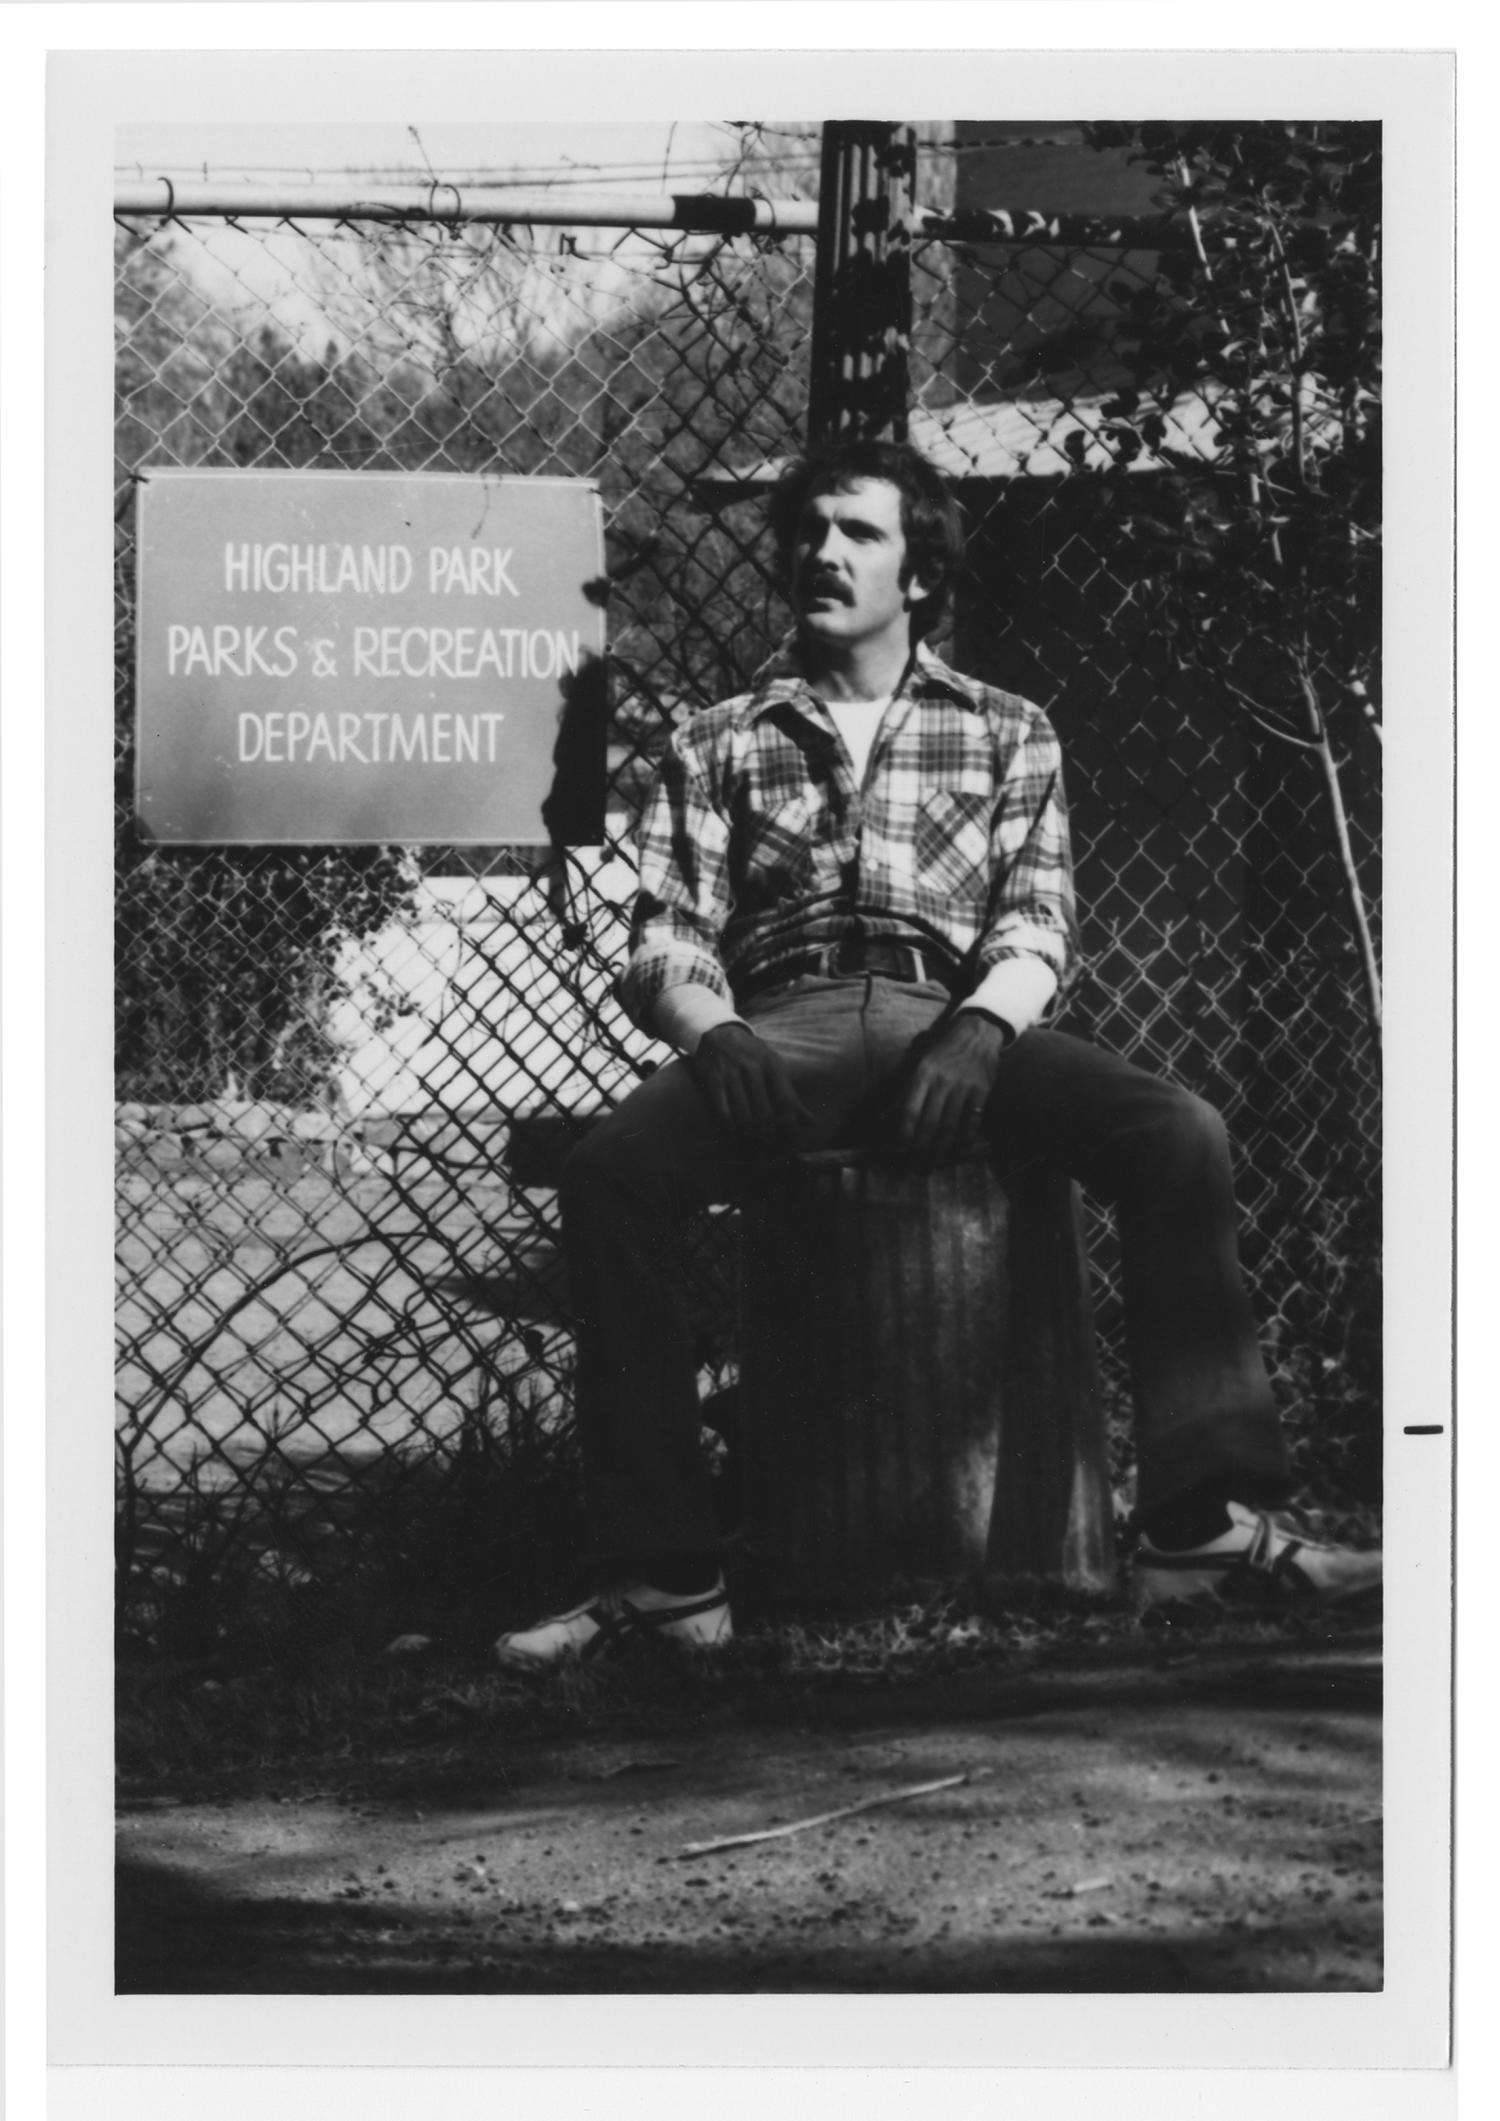 [Bill Nelson sitting by sign], Photograph of Bill Nelson sitting next to a Highland Park, Parks and Recreation Department sign.,